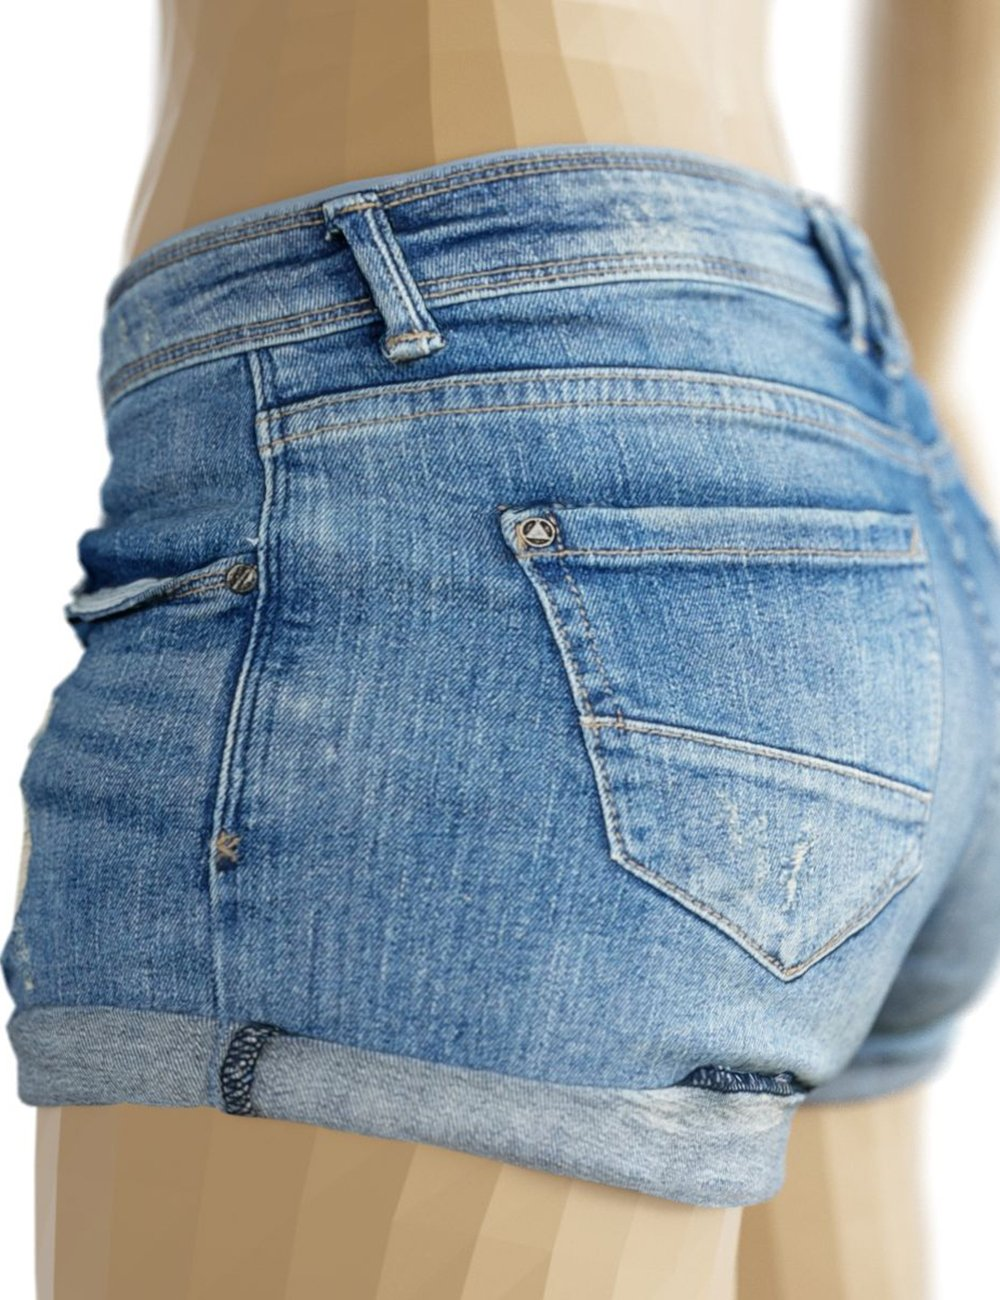 OBJ- Ripped Tiny Jeans Shorts by: Polygonal Miniatures, 3D Models by Daz 3D